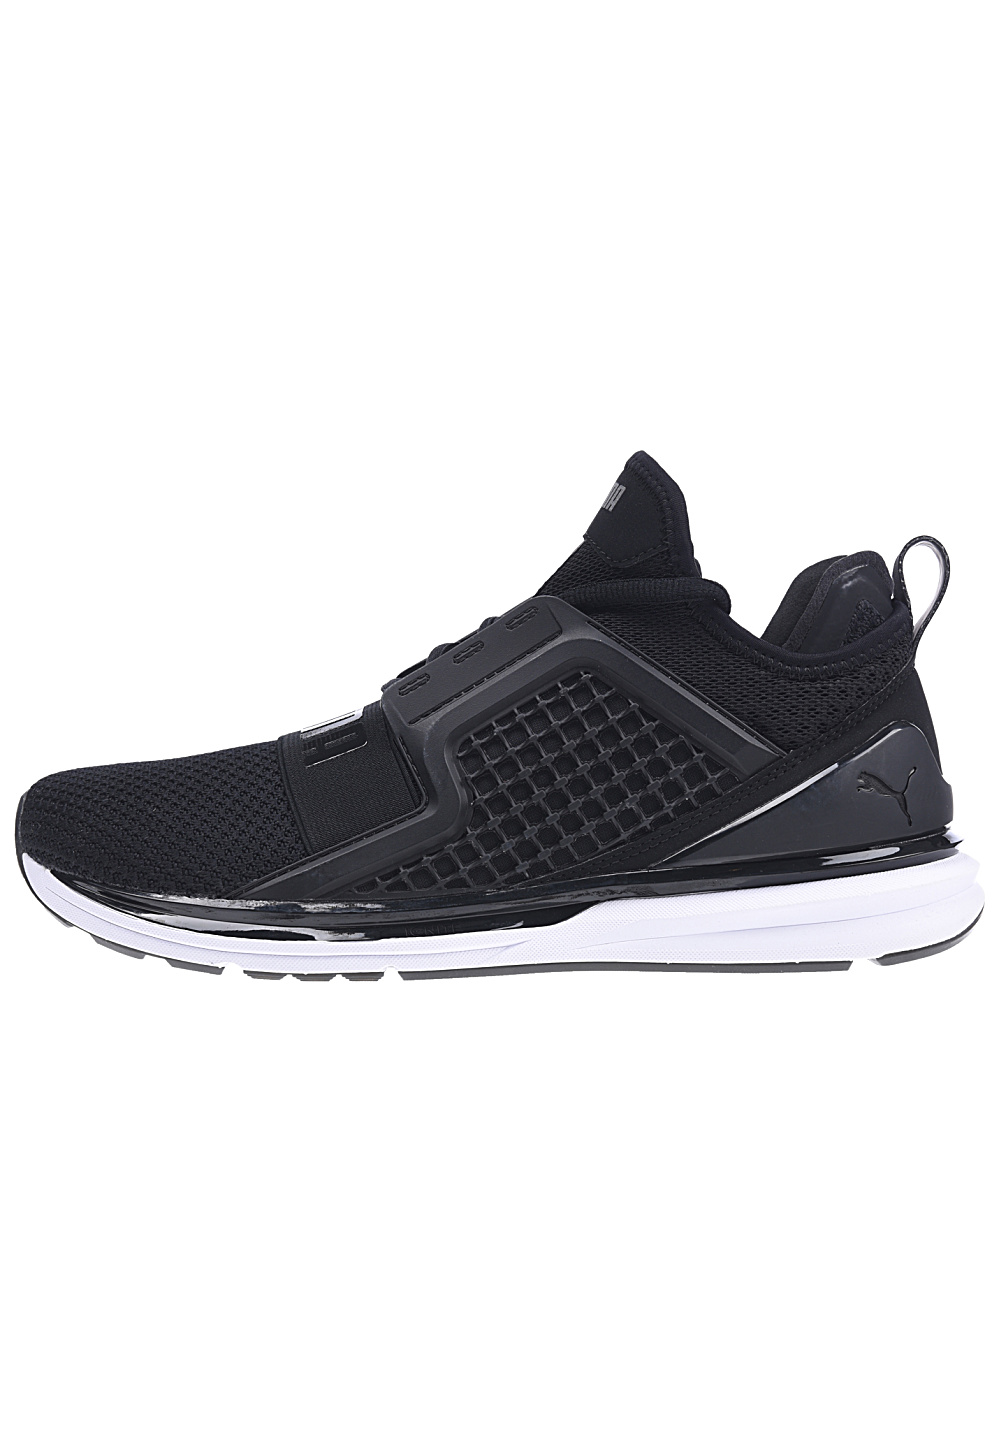 reputable site 6a68d fbe45 Puma Ignite Limitless Weave - Sneakers for Men - Black